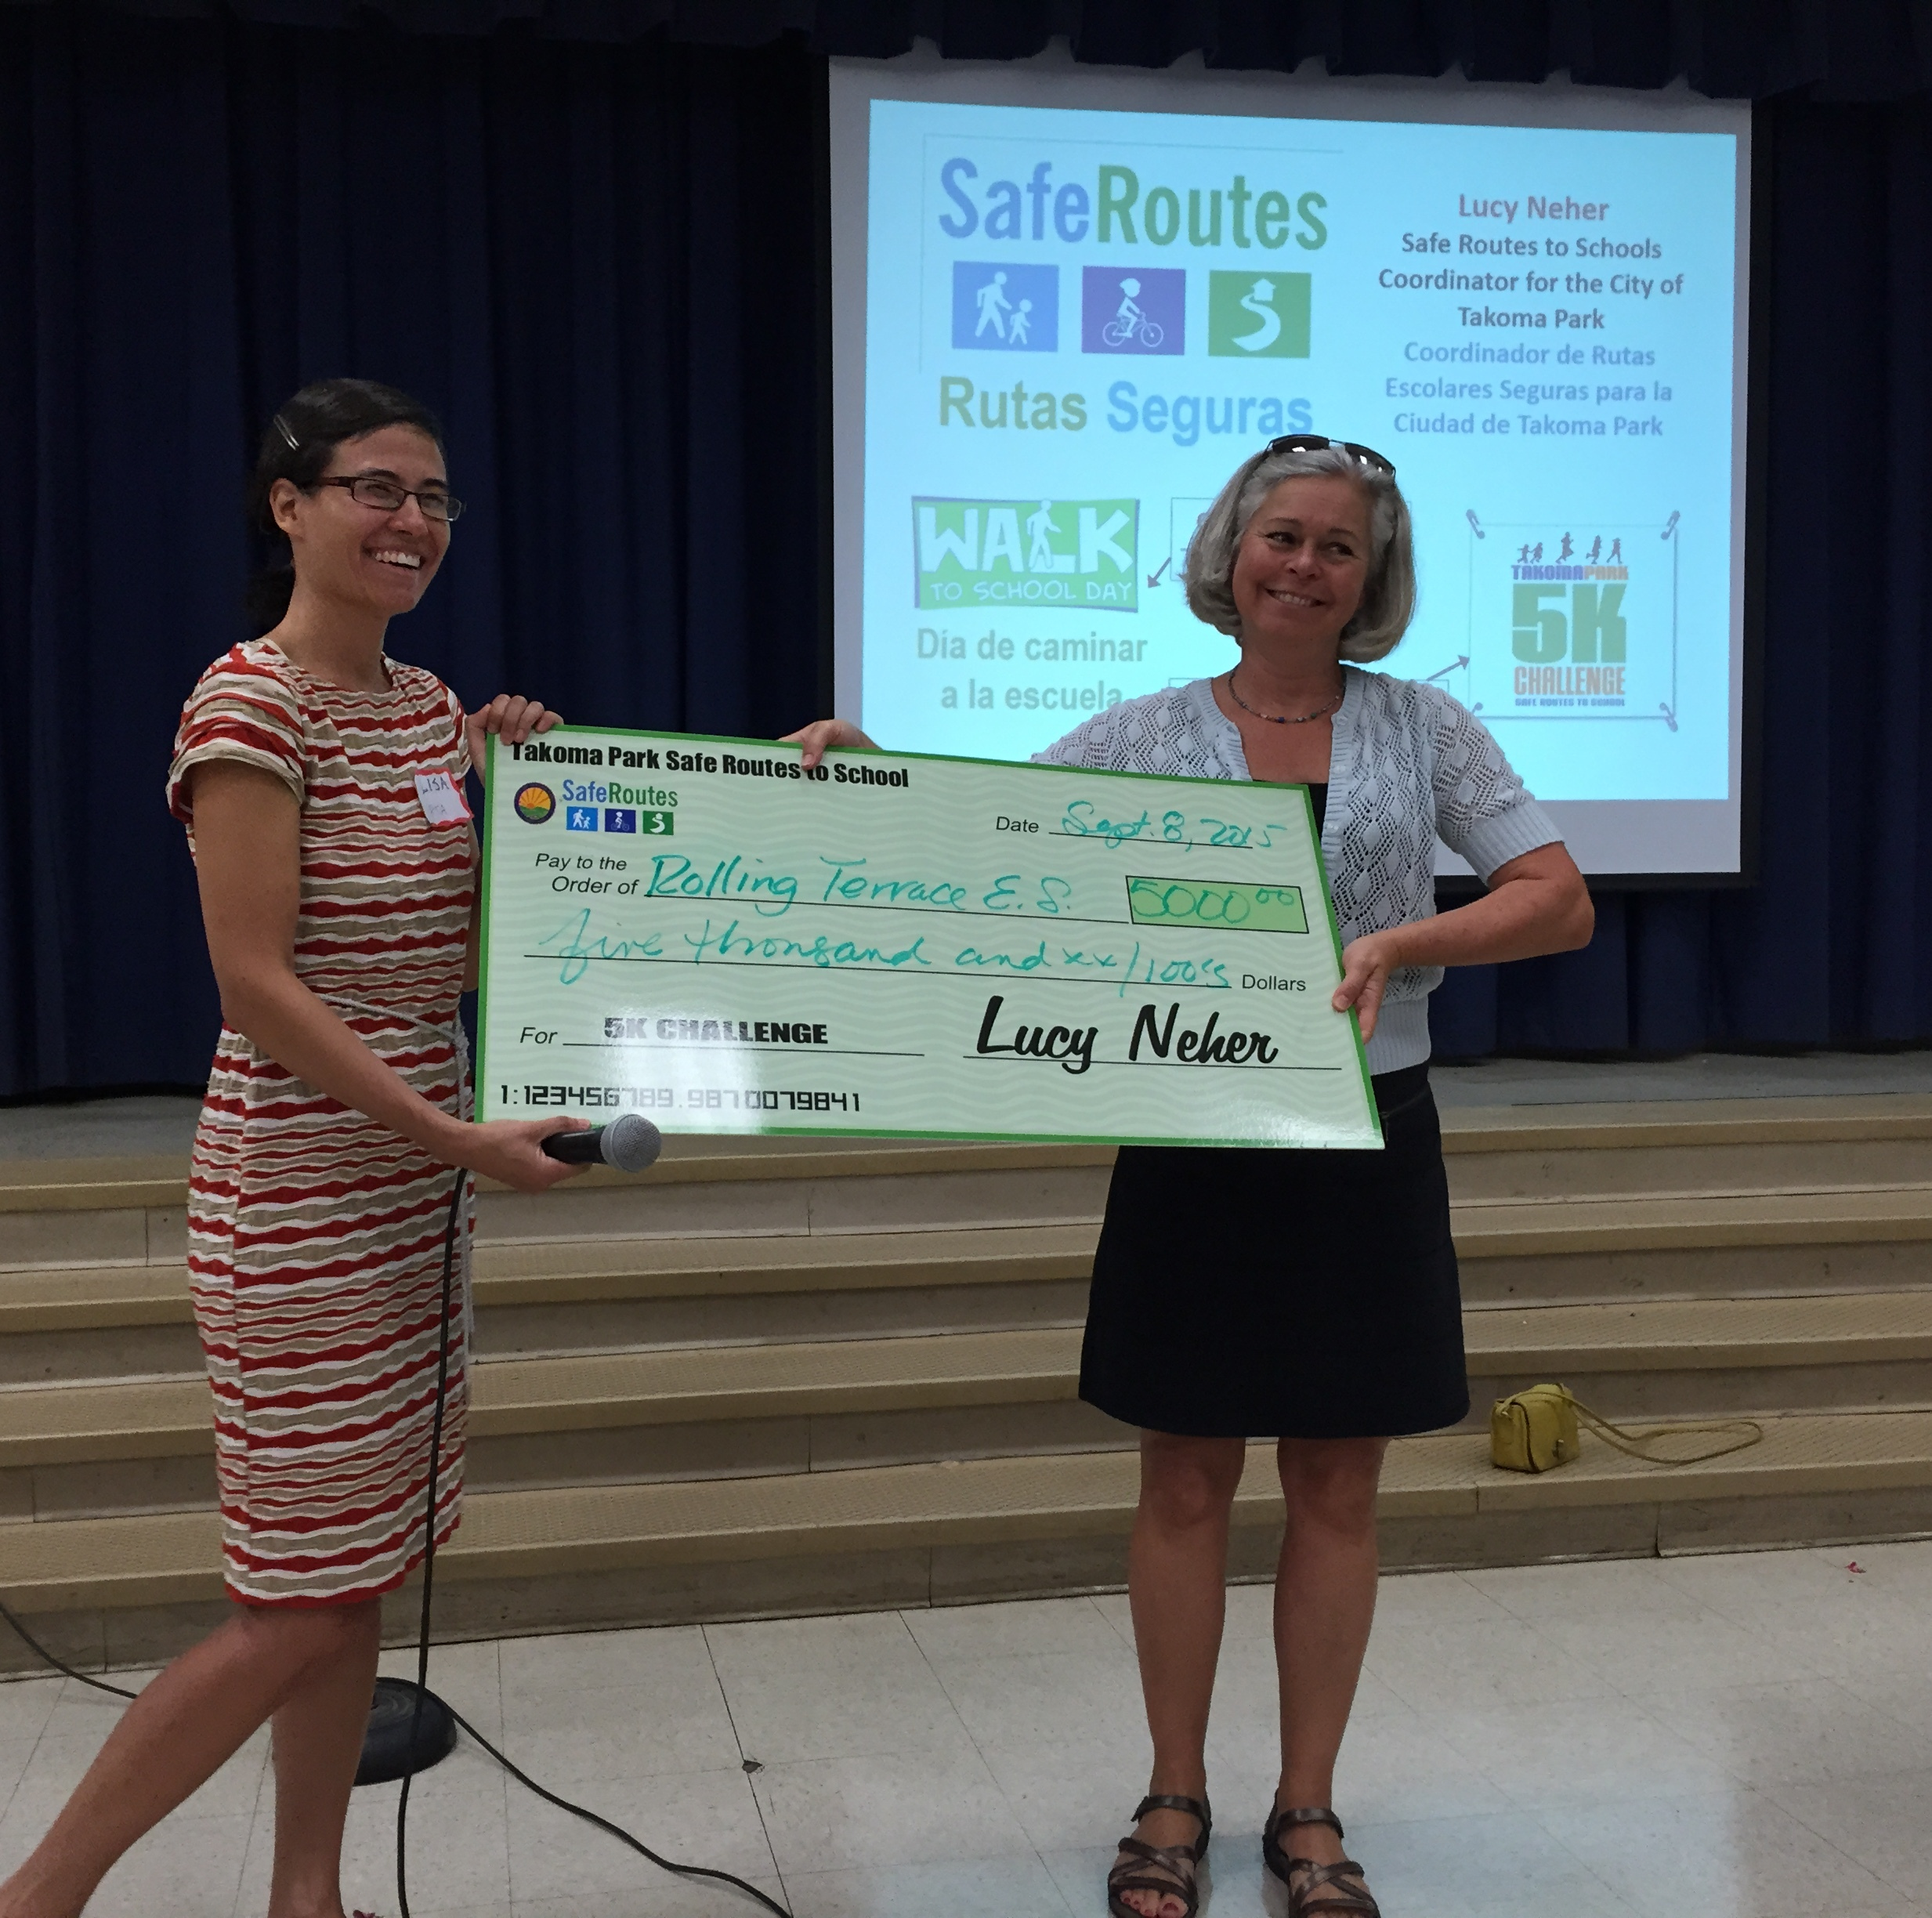 PTA meeting, PTA President, Lisa Seigel, received a $5,000 check from Lucy Neher, Safe Routes to Schools Coordinator for the City of Takoma Park.